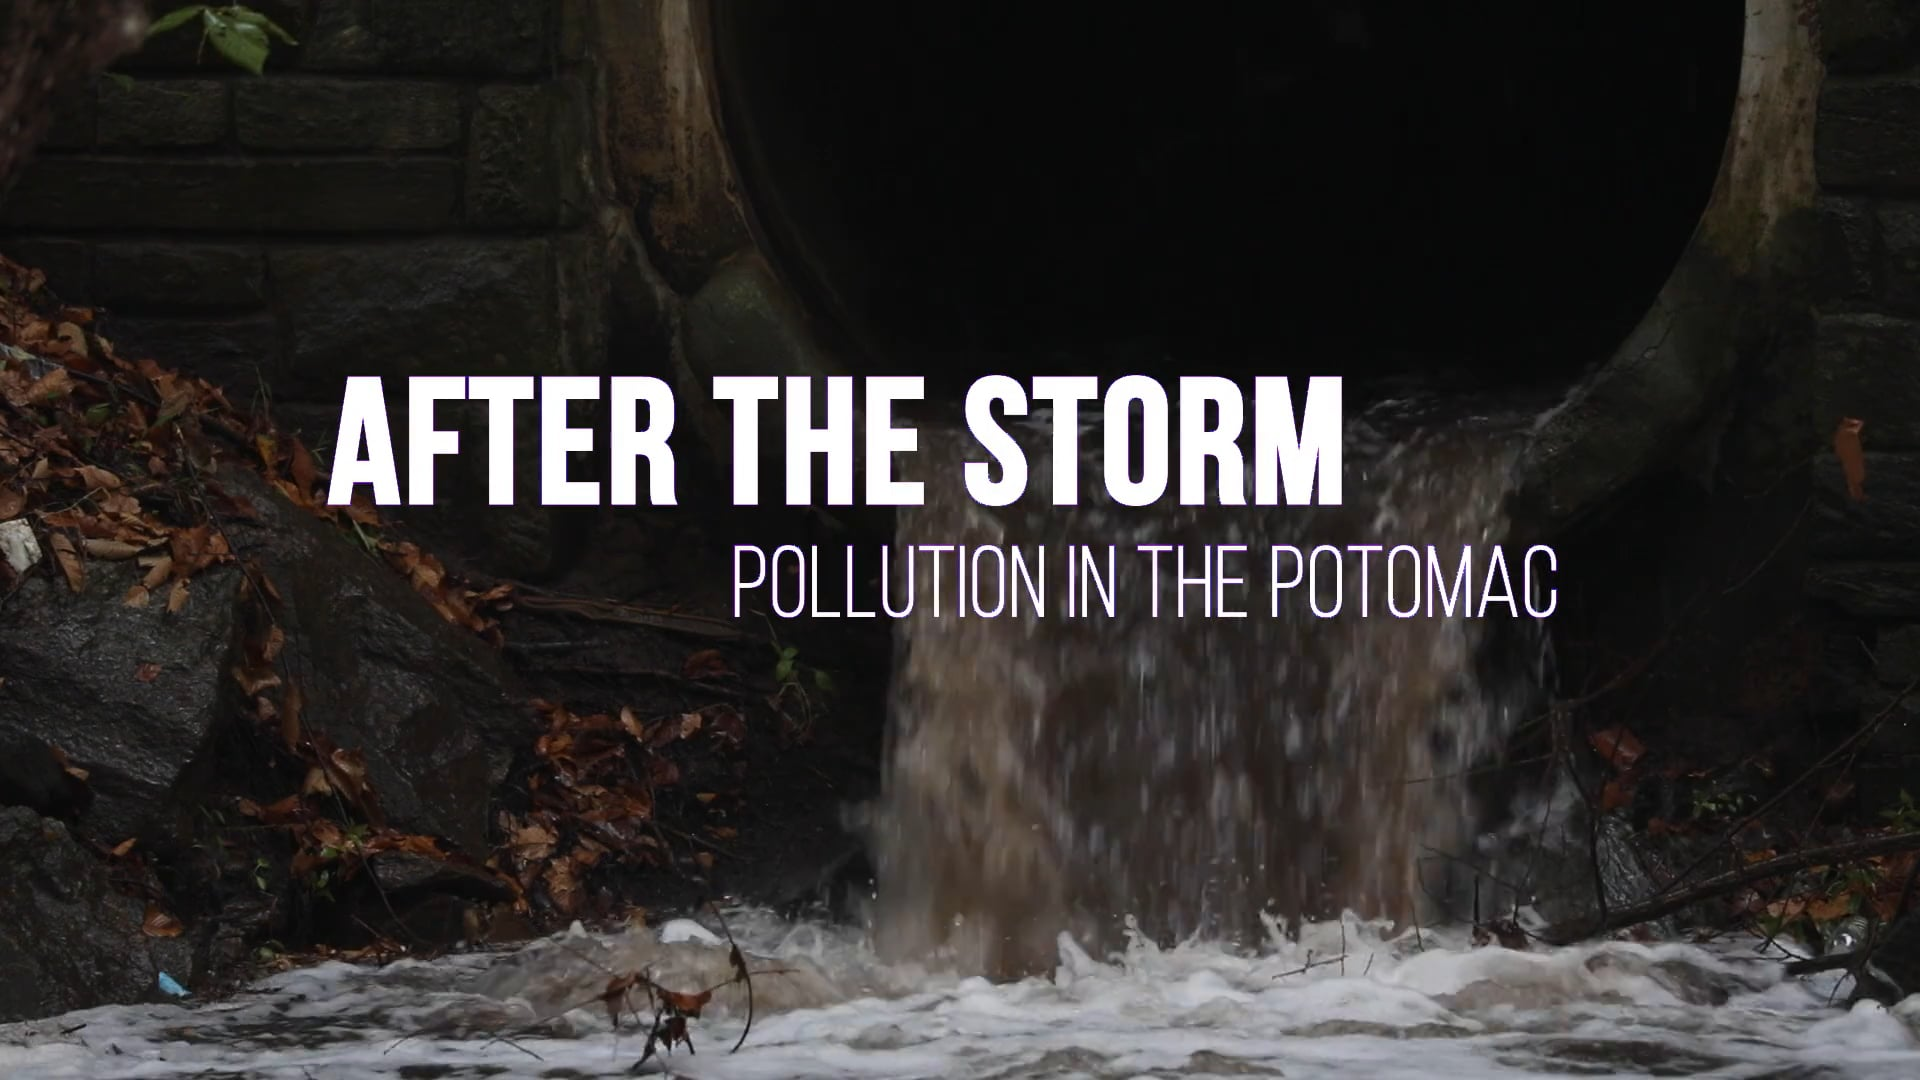 After the Storm: Pollution in the Potomac